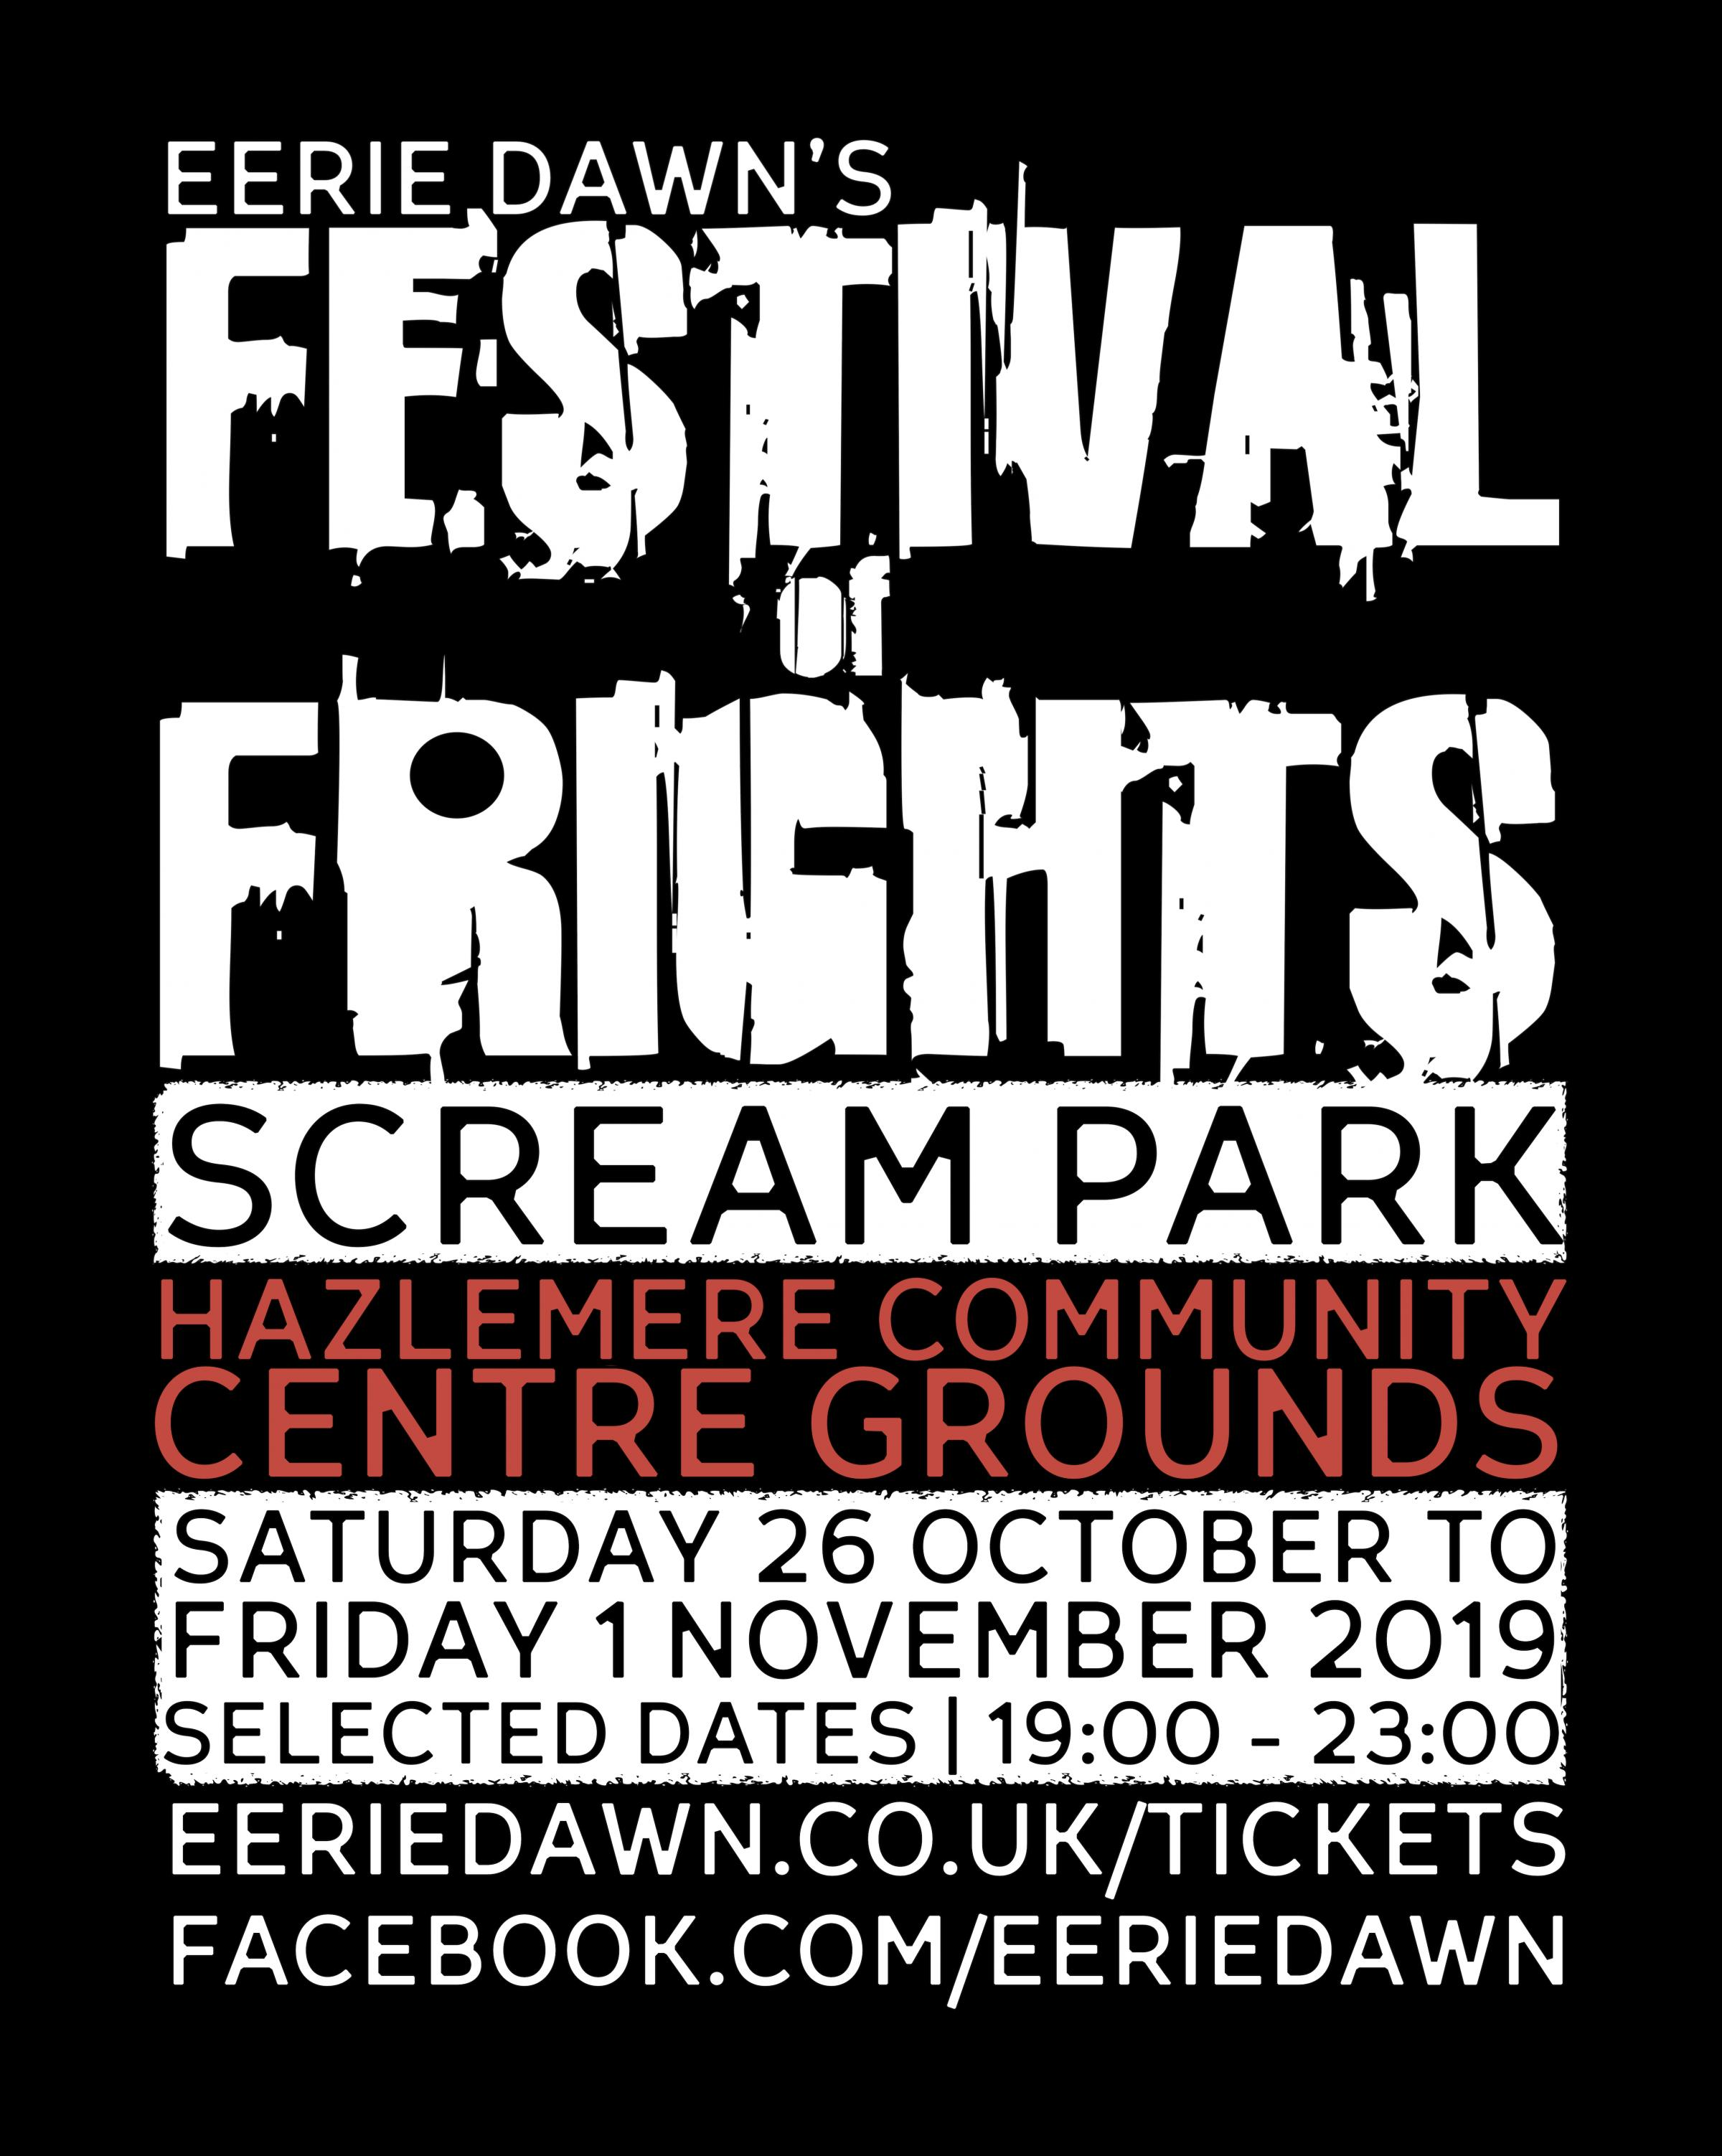 Eerie Dawn's Festival of Frights